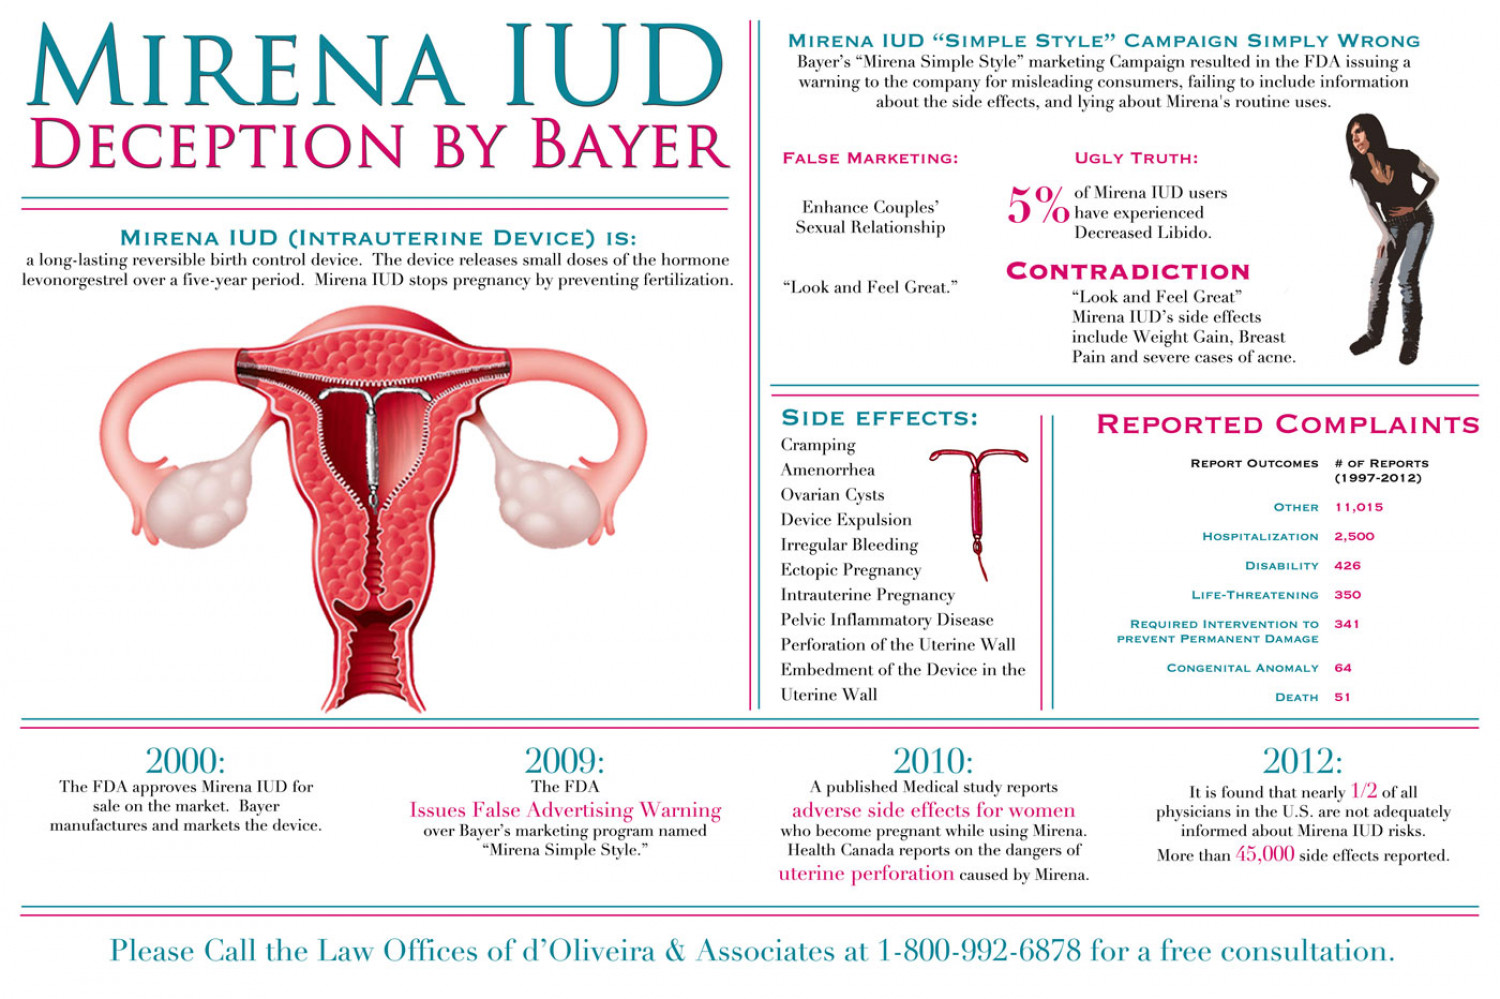 mirena-iud-lawyer-birth-control-device-side-effects-lawsuit-infographic Infographic